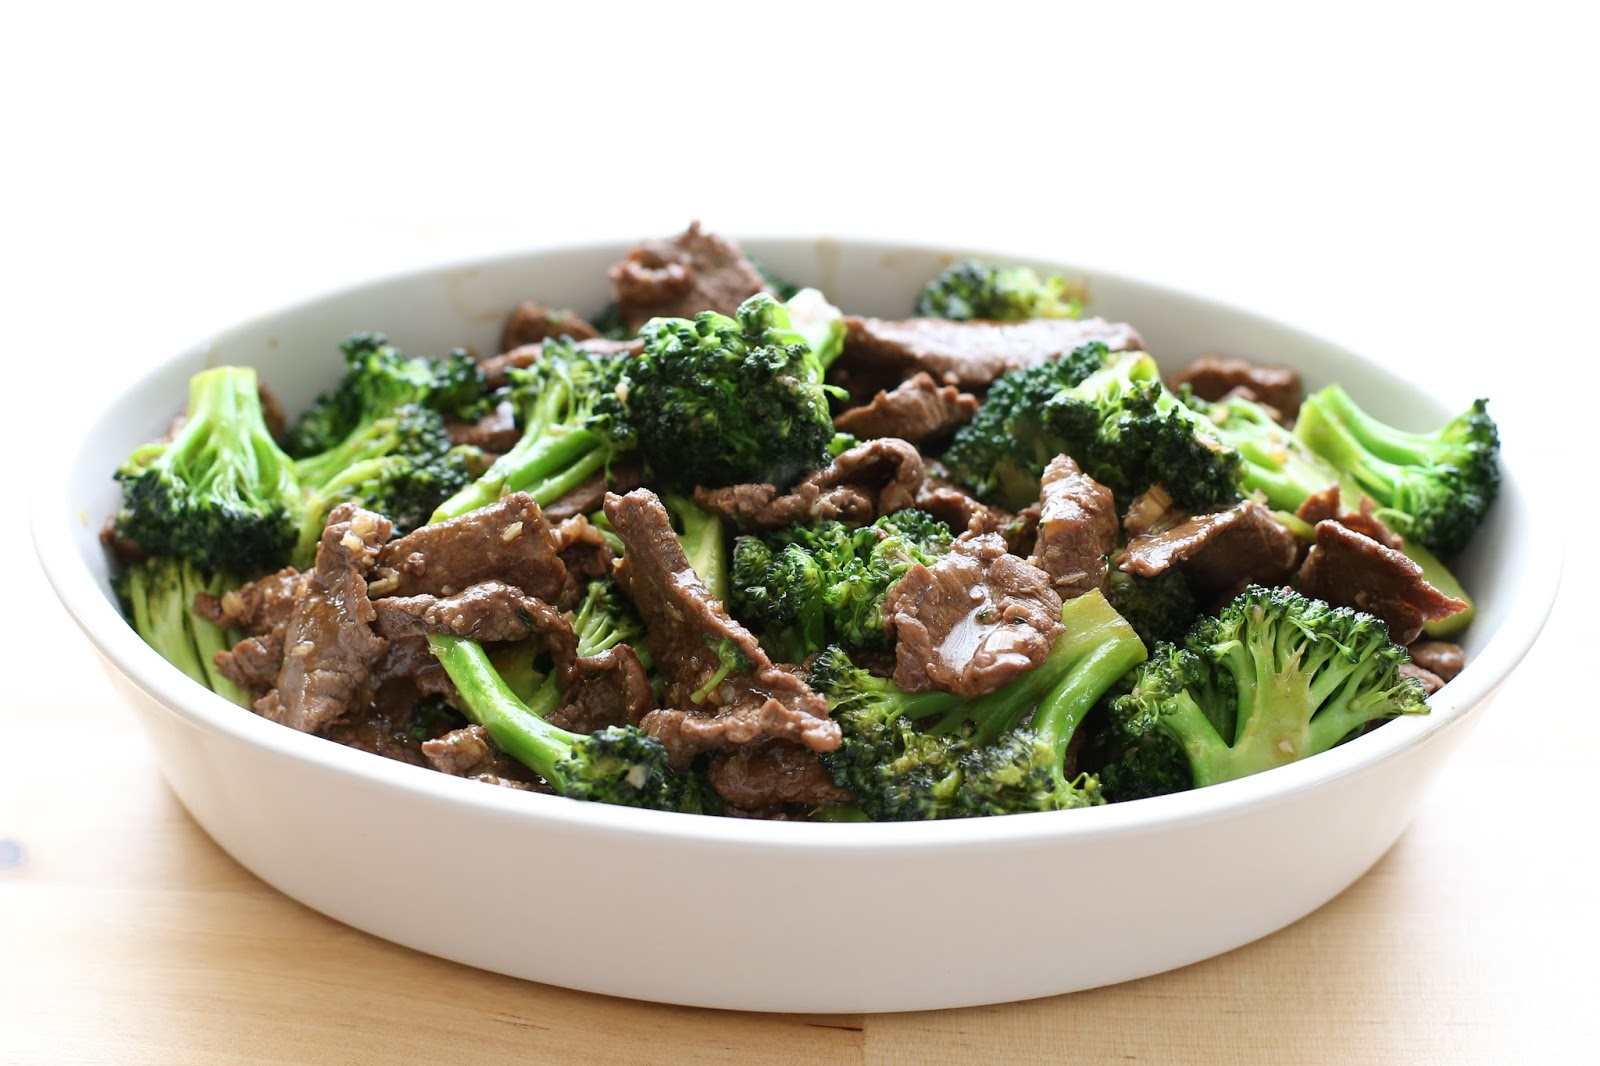 Barefeet In The Kitchen's Top 10 Recipes for 2014 - Chinese Beef and Broccoli